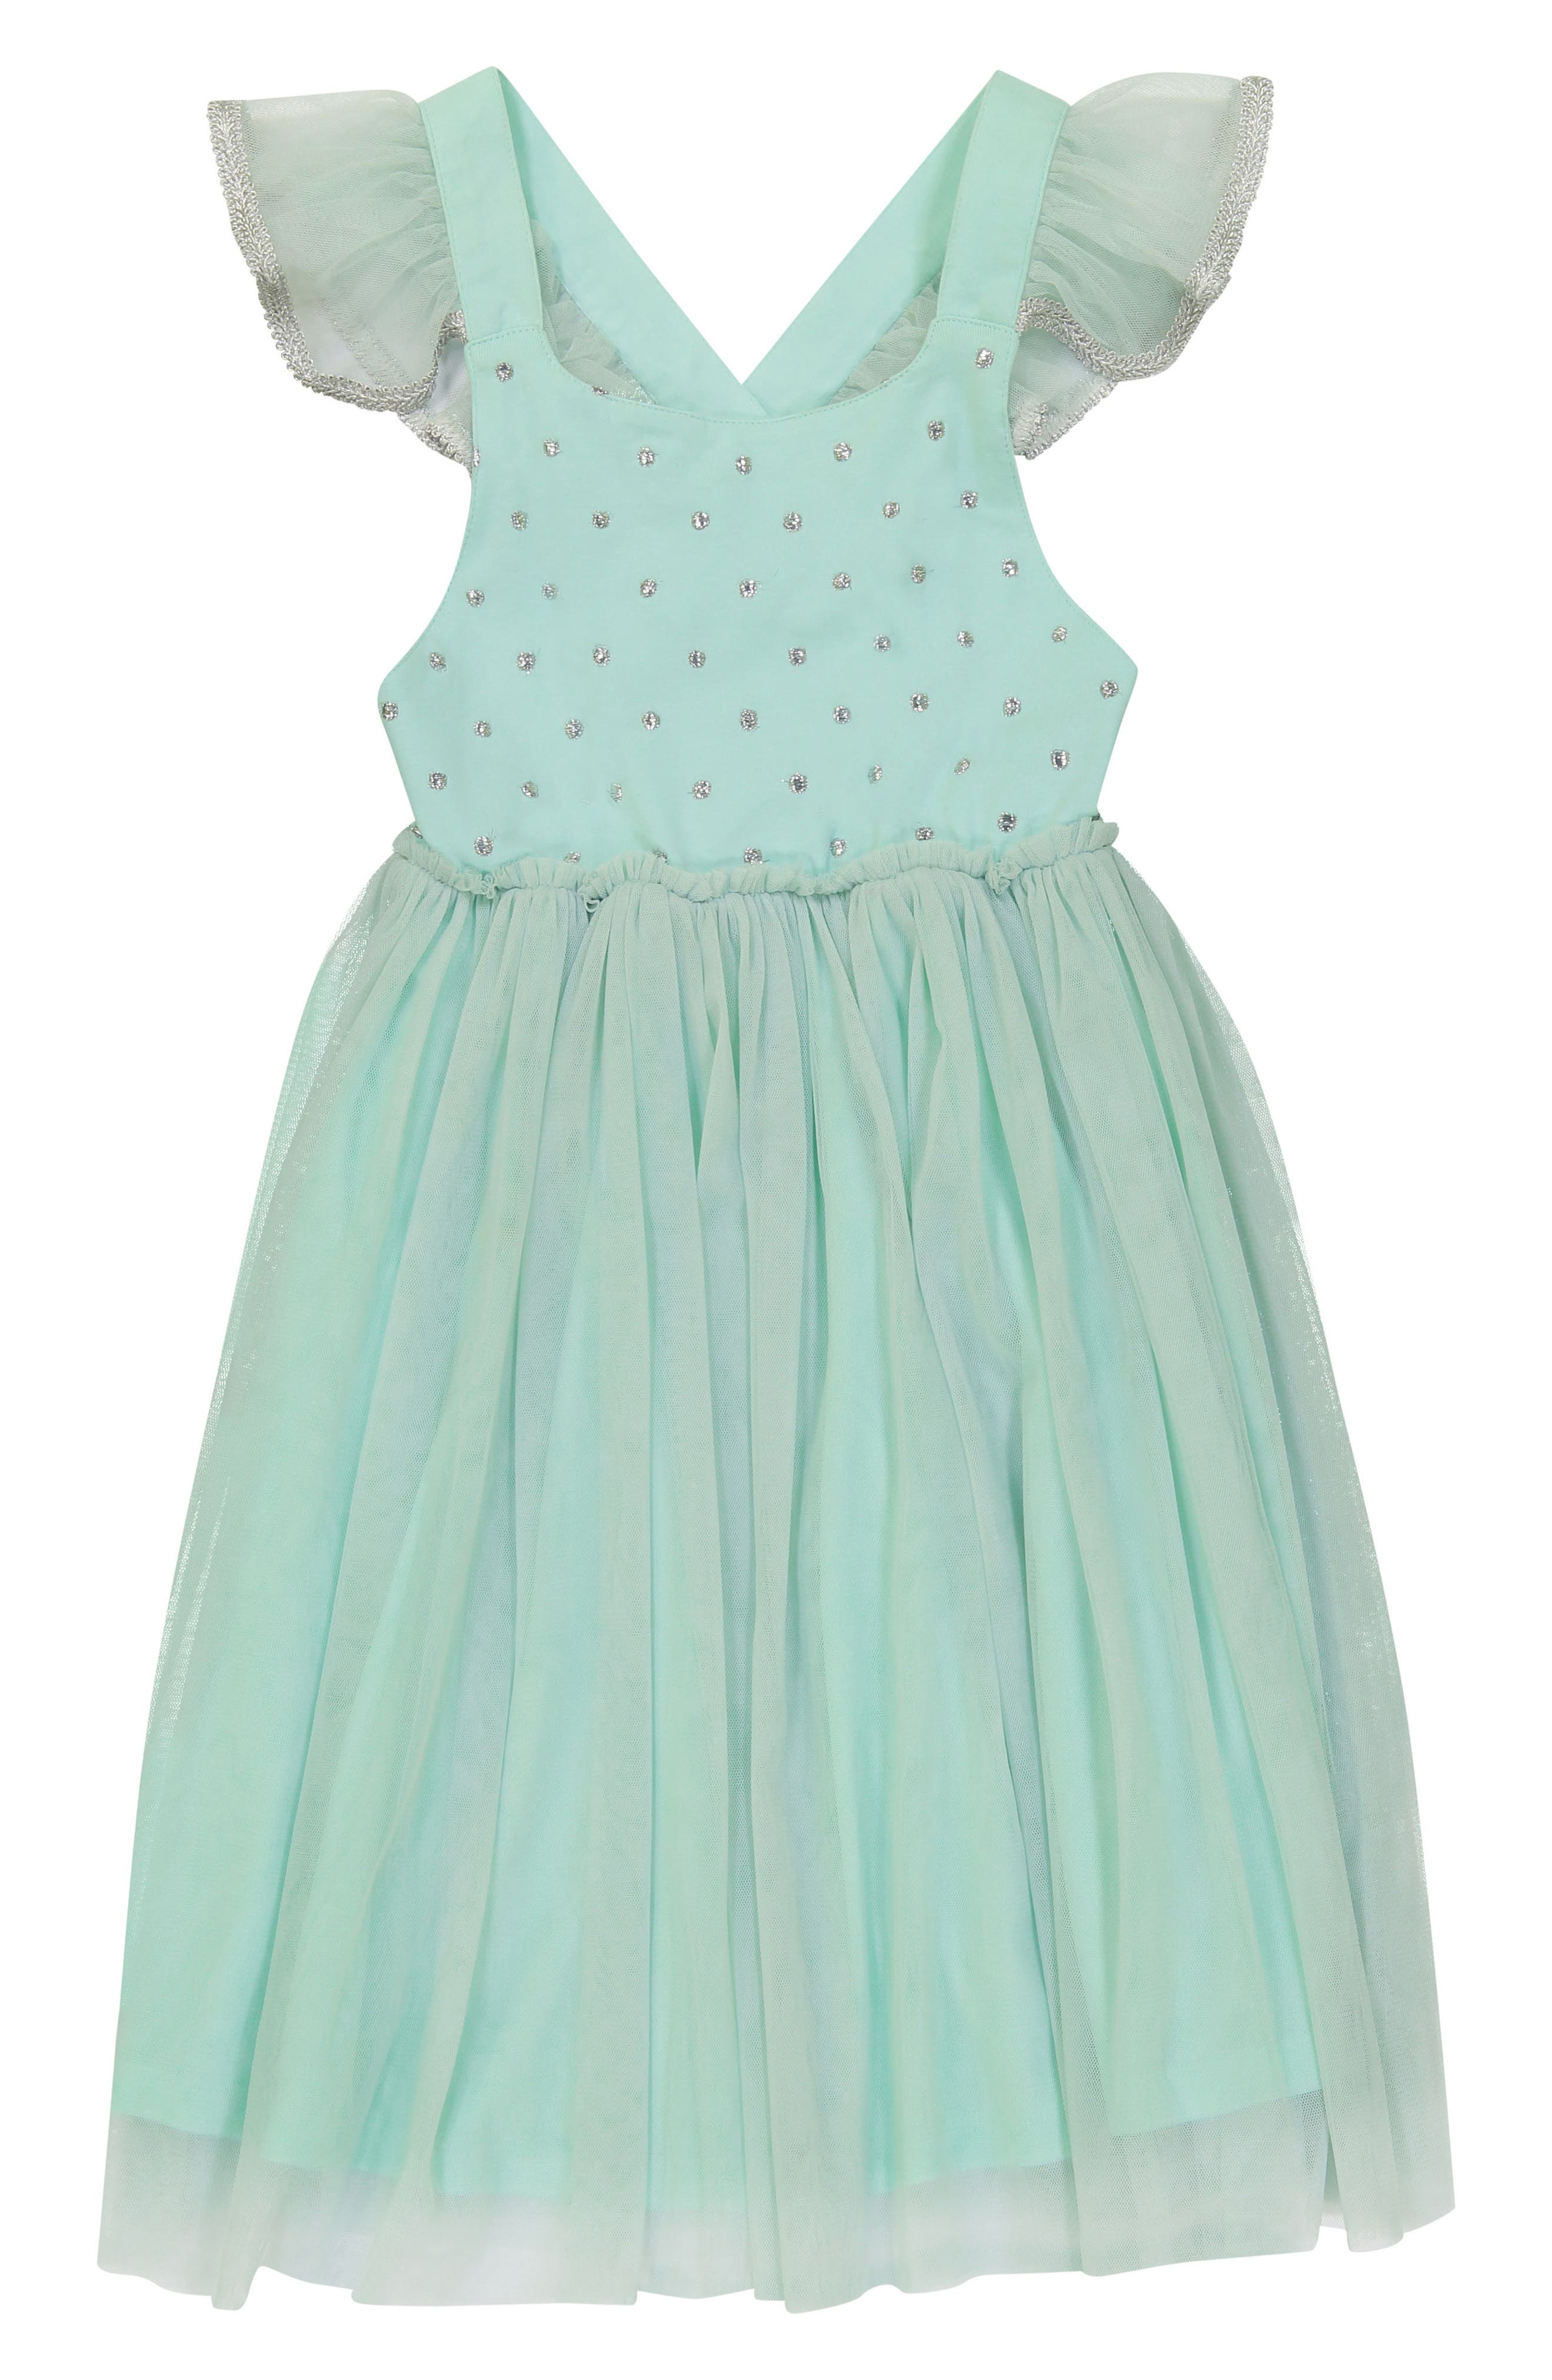 Diya Tulle Sundress,                             Main thumbnail 1, color,                             Turquoise